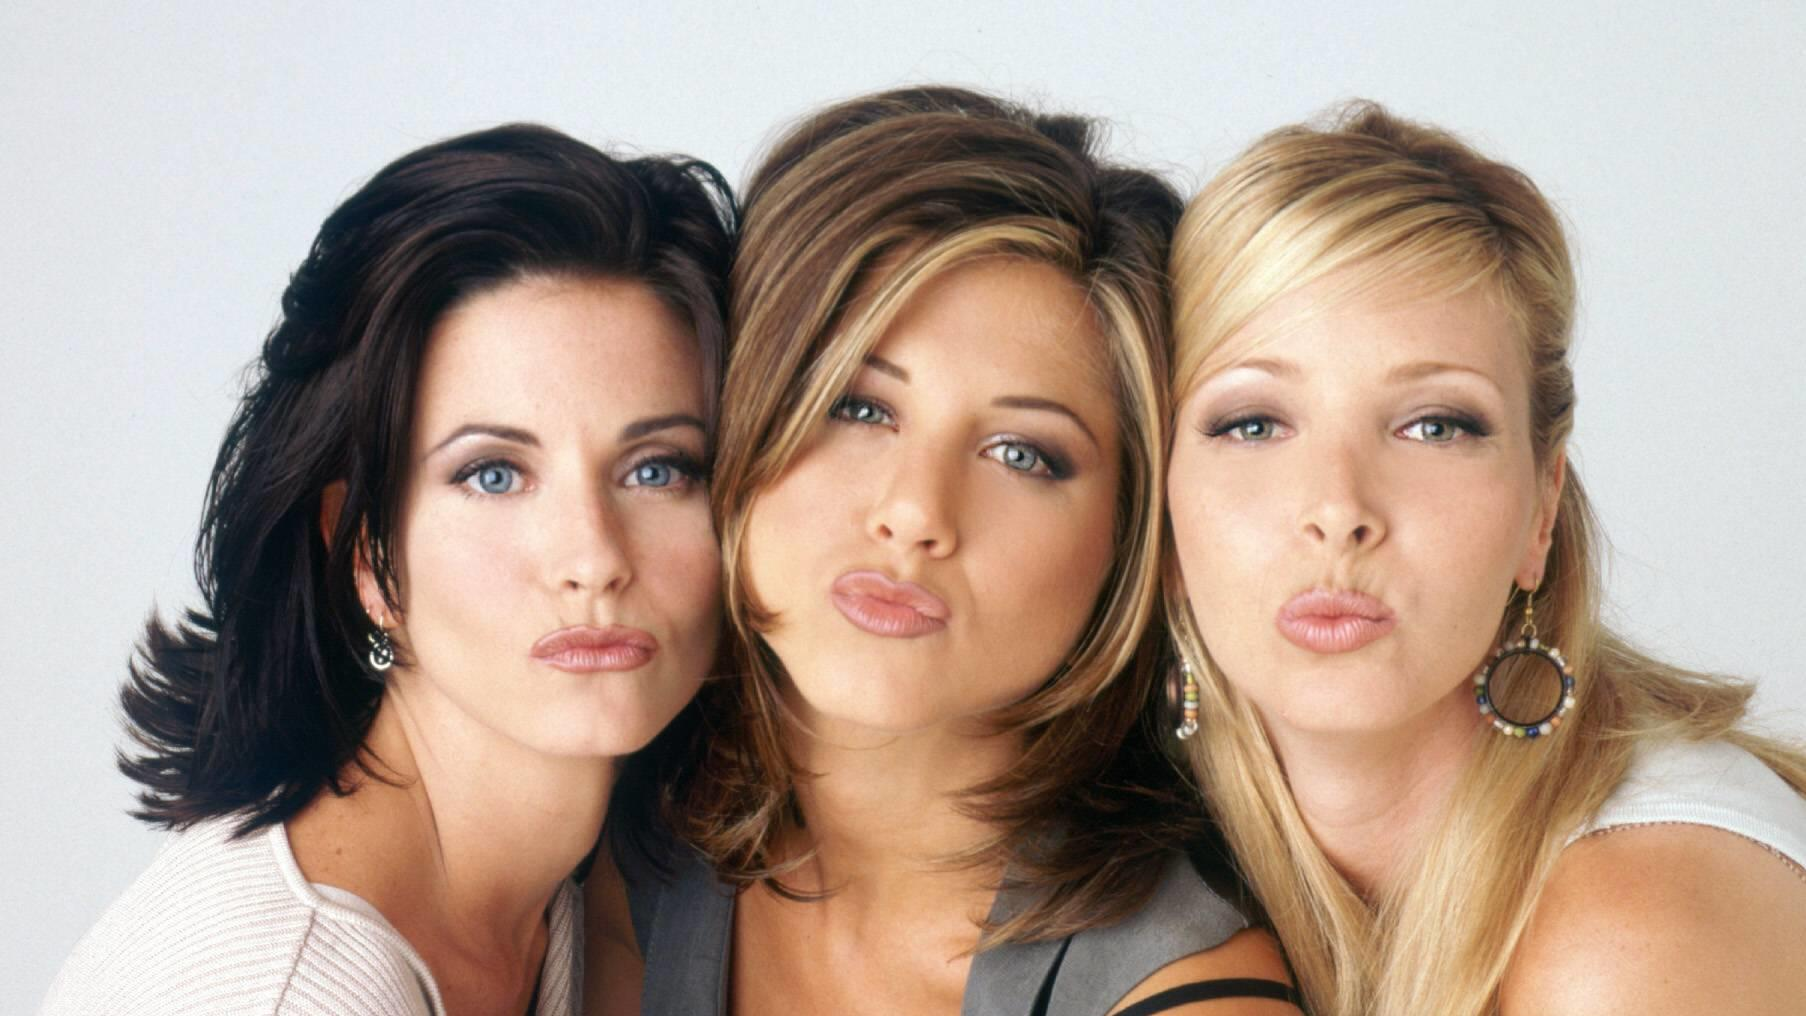 Jennifer Aniston. Pictured: Sep 22, 1994; Hollywood, CA, USA; (left to right) COURTNEY COX as Monica Geller, JENNIFER ANISTON as Rachel Green, and LISA KUDROW as Phoebe Buffay in the comedy TV series Friends created by David Crane and Marta Kauffman.